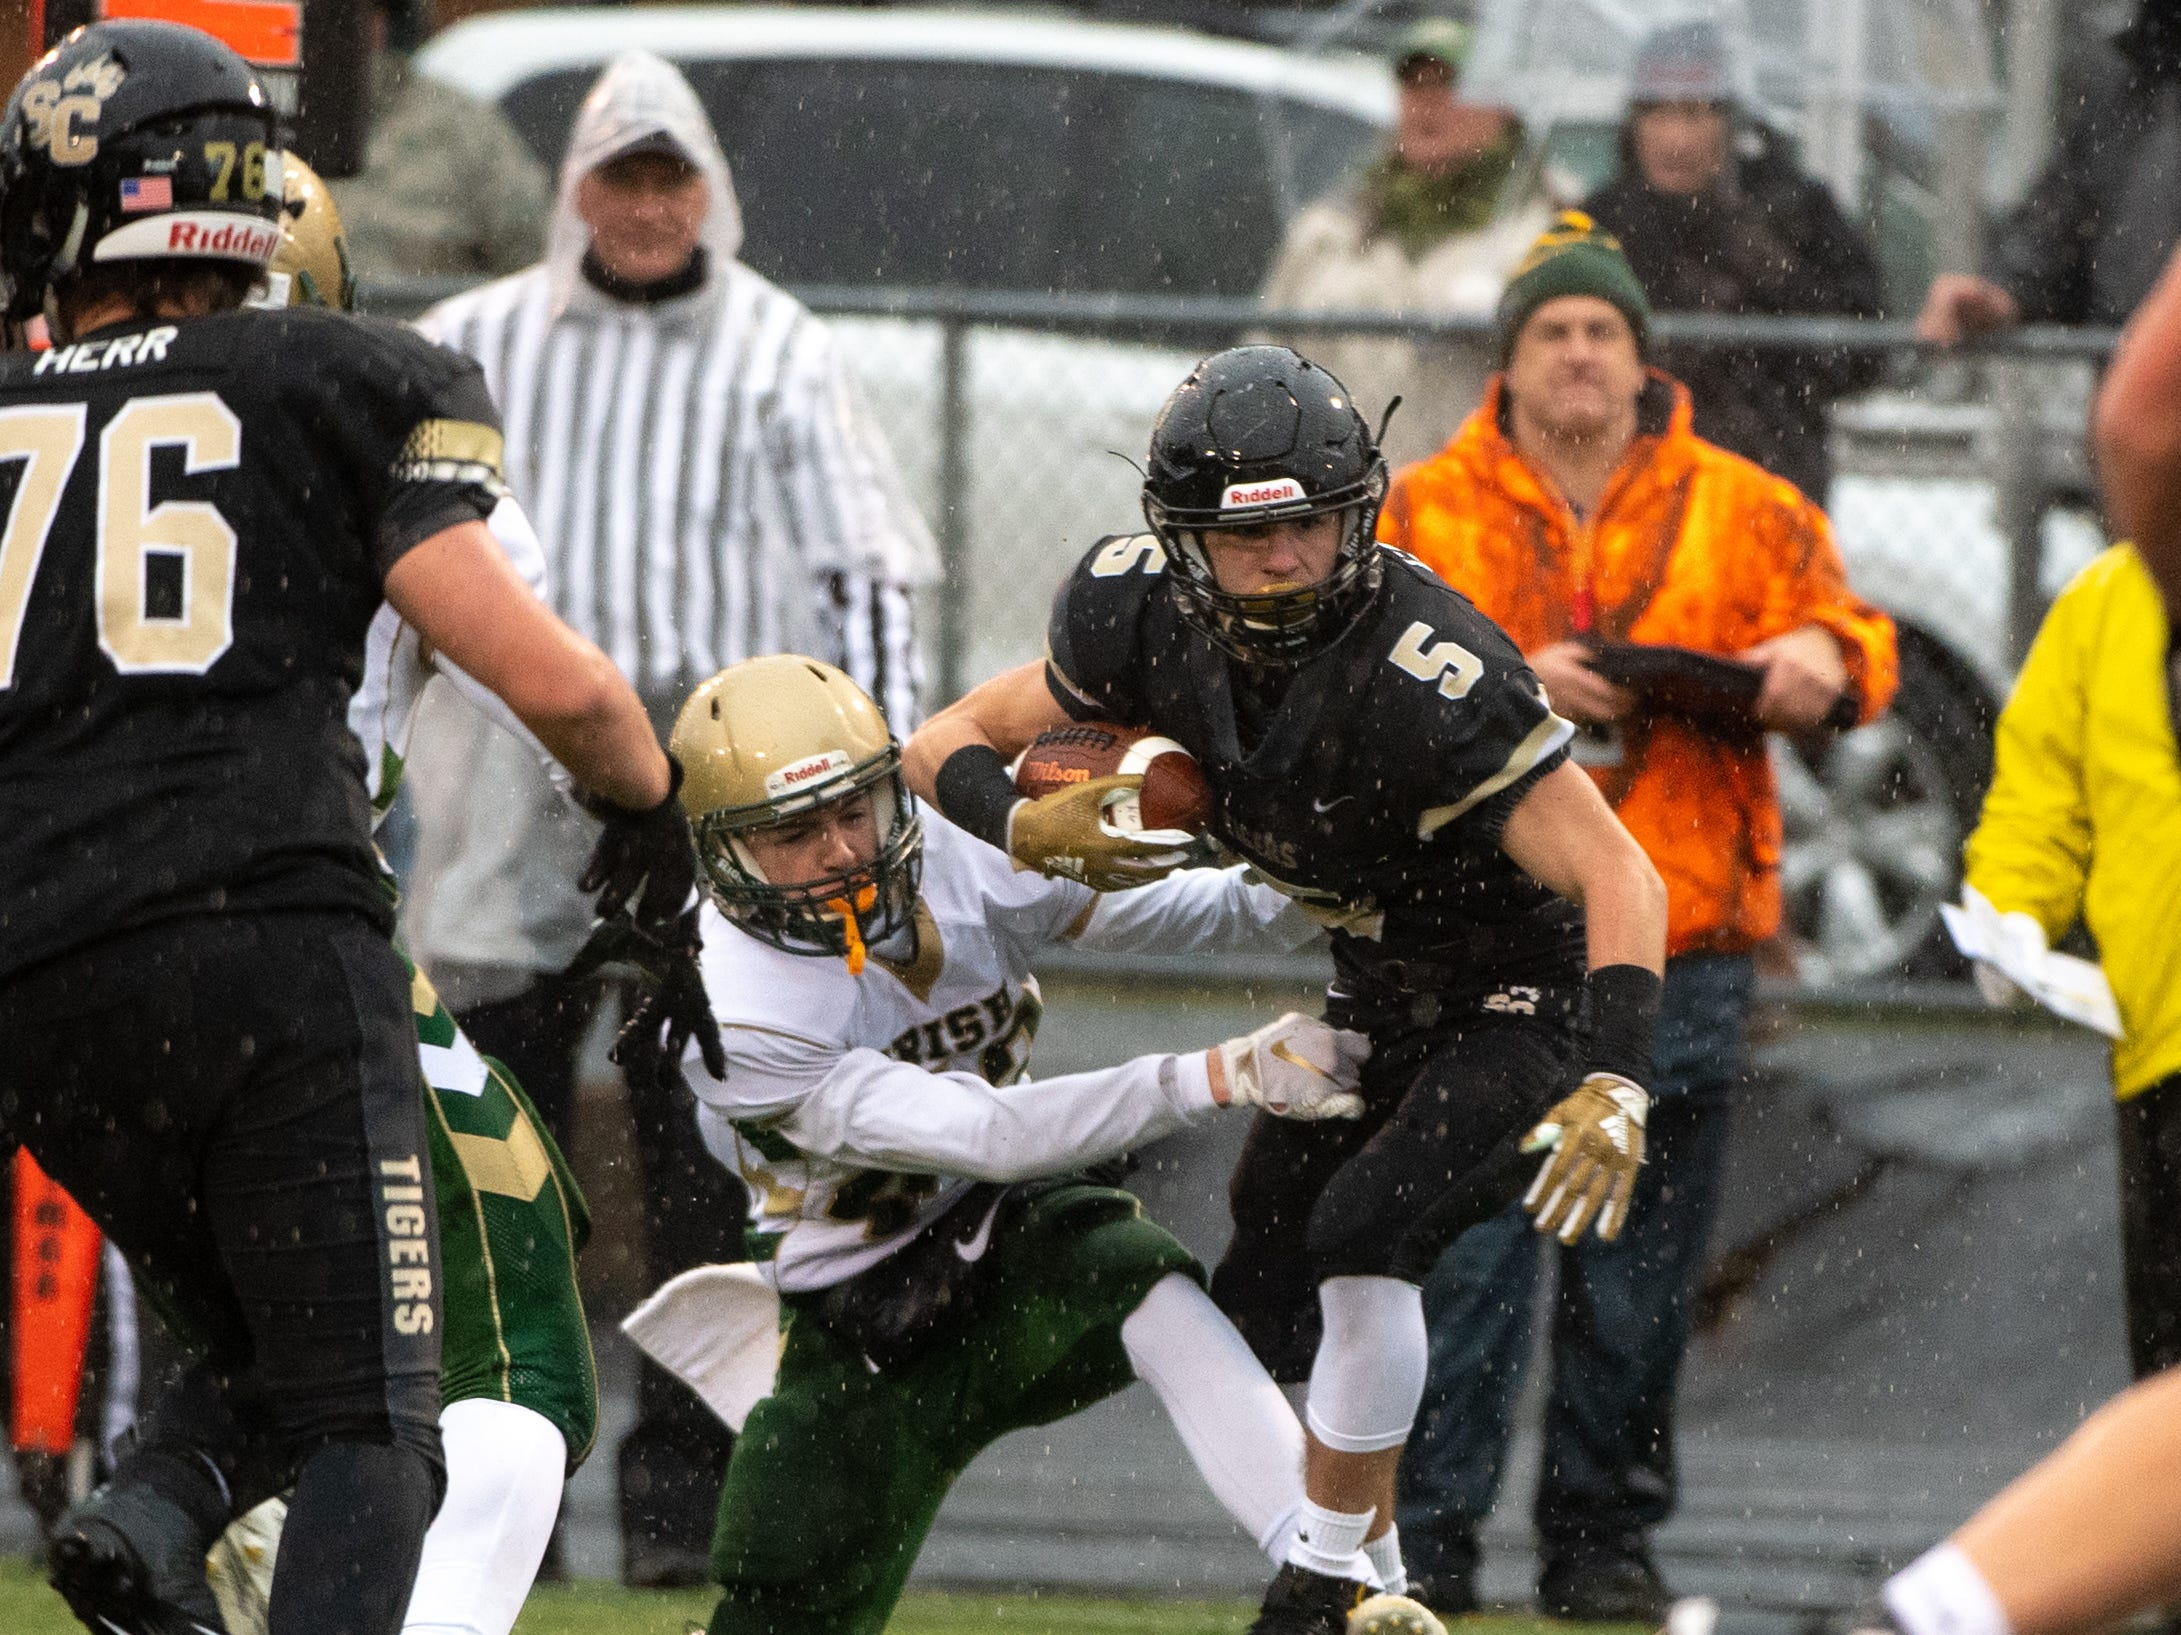 Gavin Garcia (5) evades a tackle during the state quarter-finals game between York Catholic and Southern Columbia, November 24, 2018. The Tigers defeated the Irish 56-23.